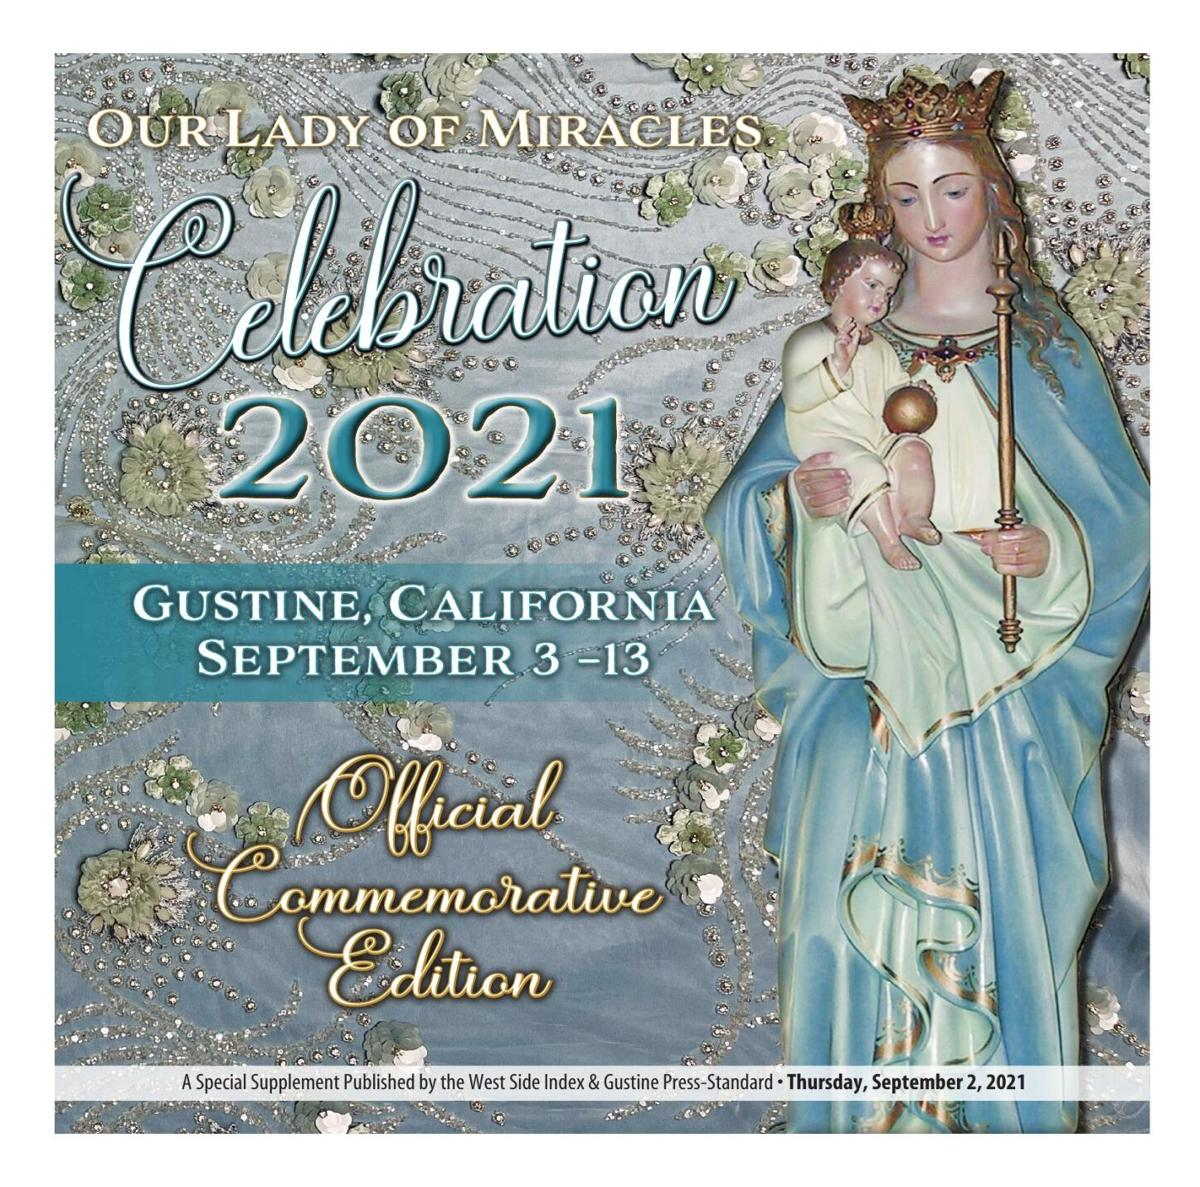 2021 Our Lady of Miracles Celebration